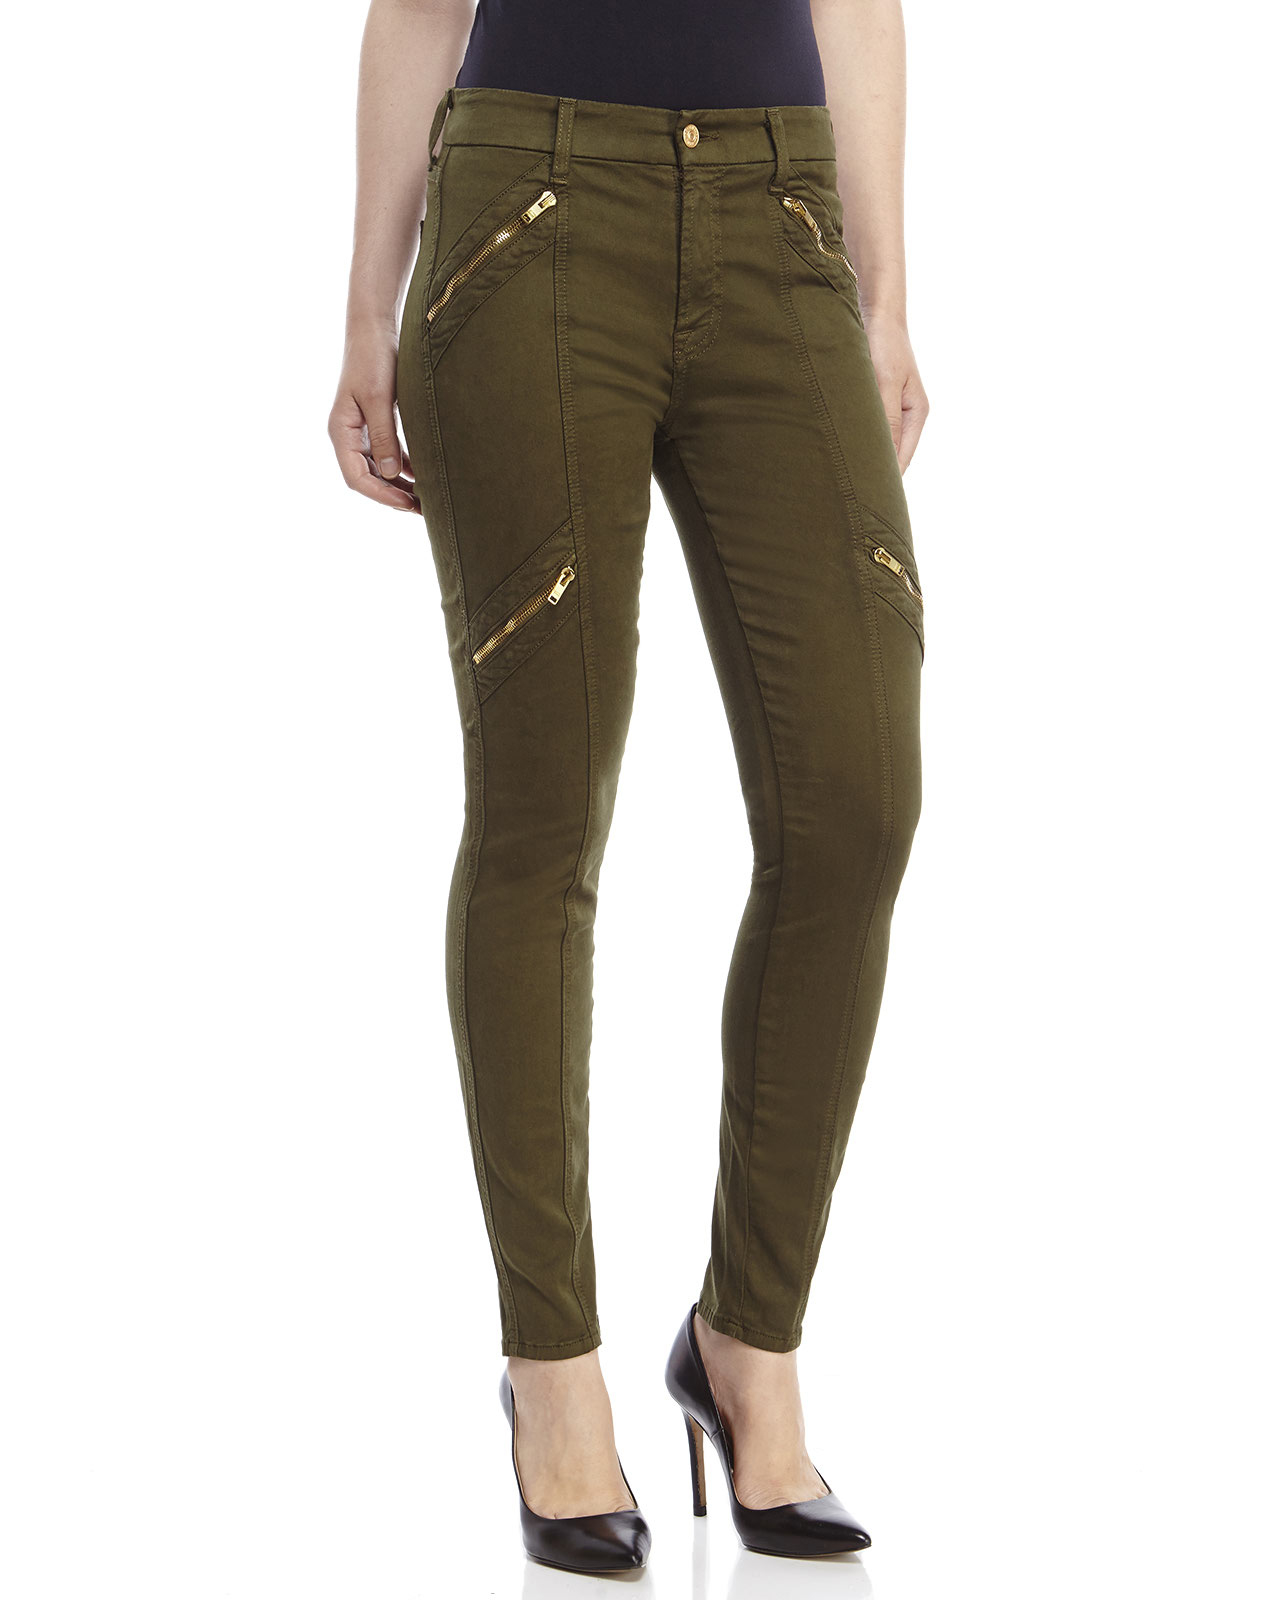 Find great deals on eBay for olive green skinny jeans women. Shop with confidence.